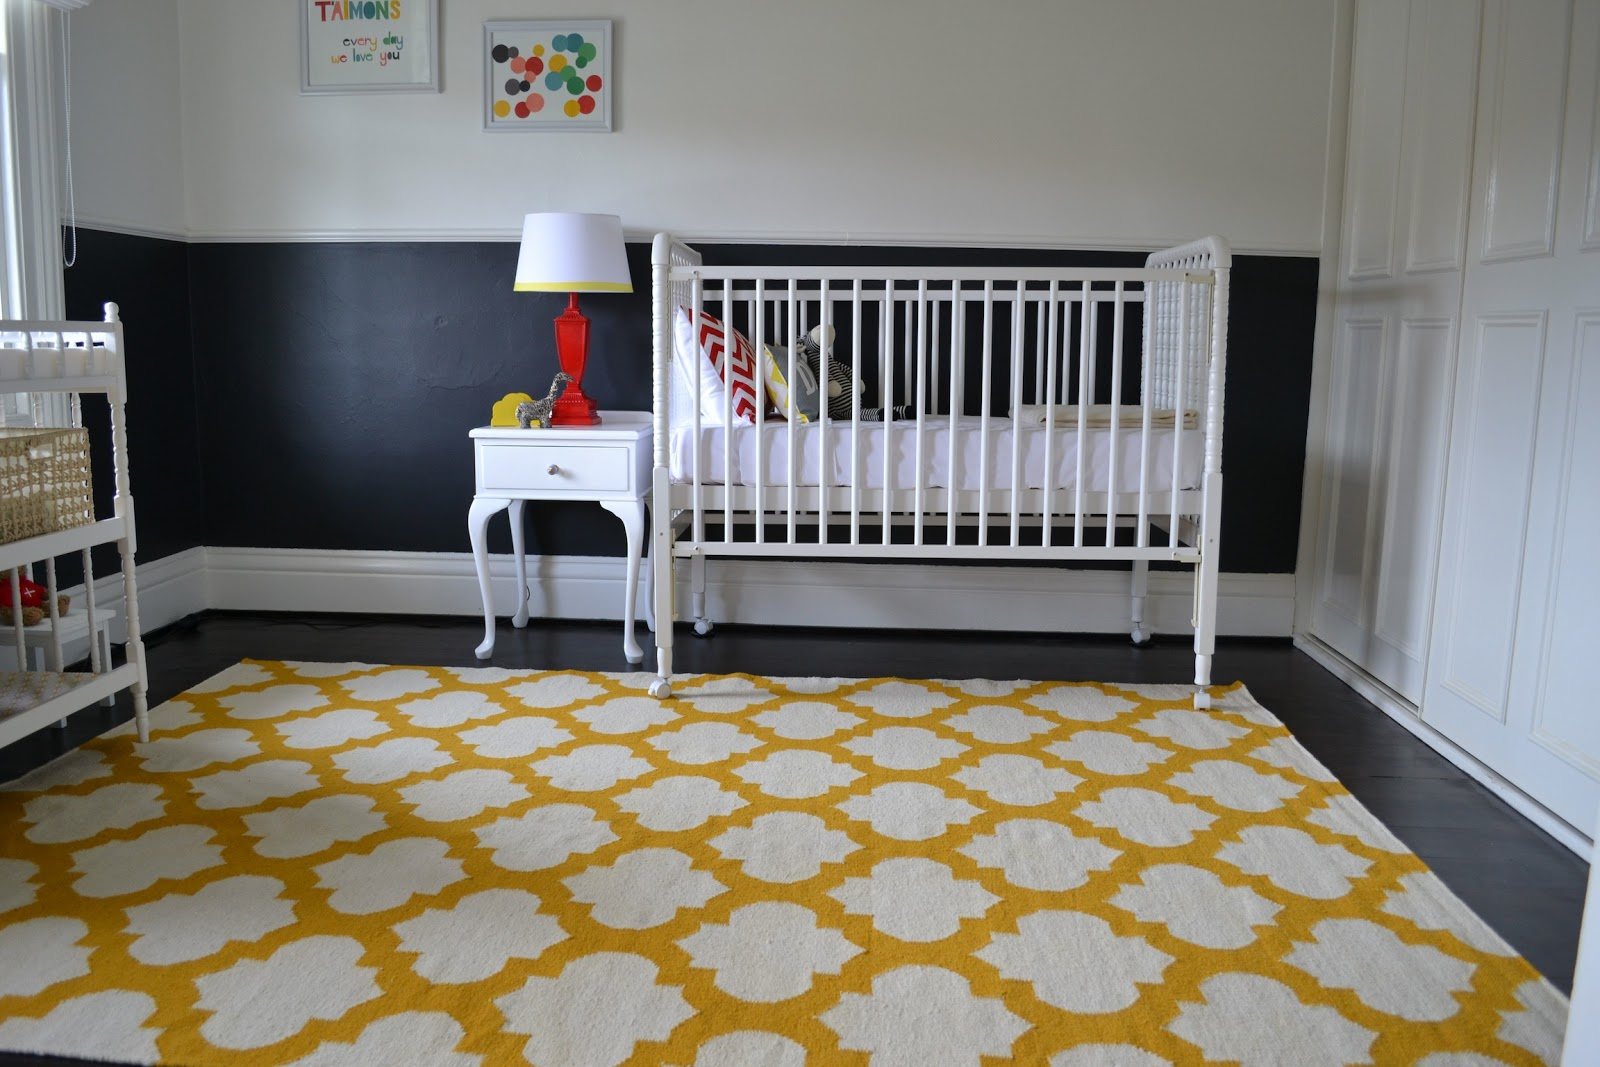 Kids Bedroom Rugs Australia charles whyte: a rug to warm the baby's room